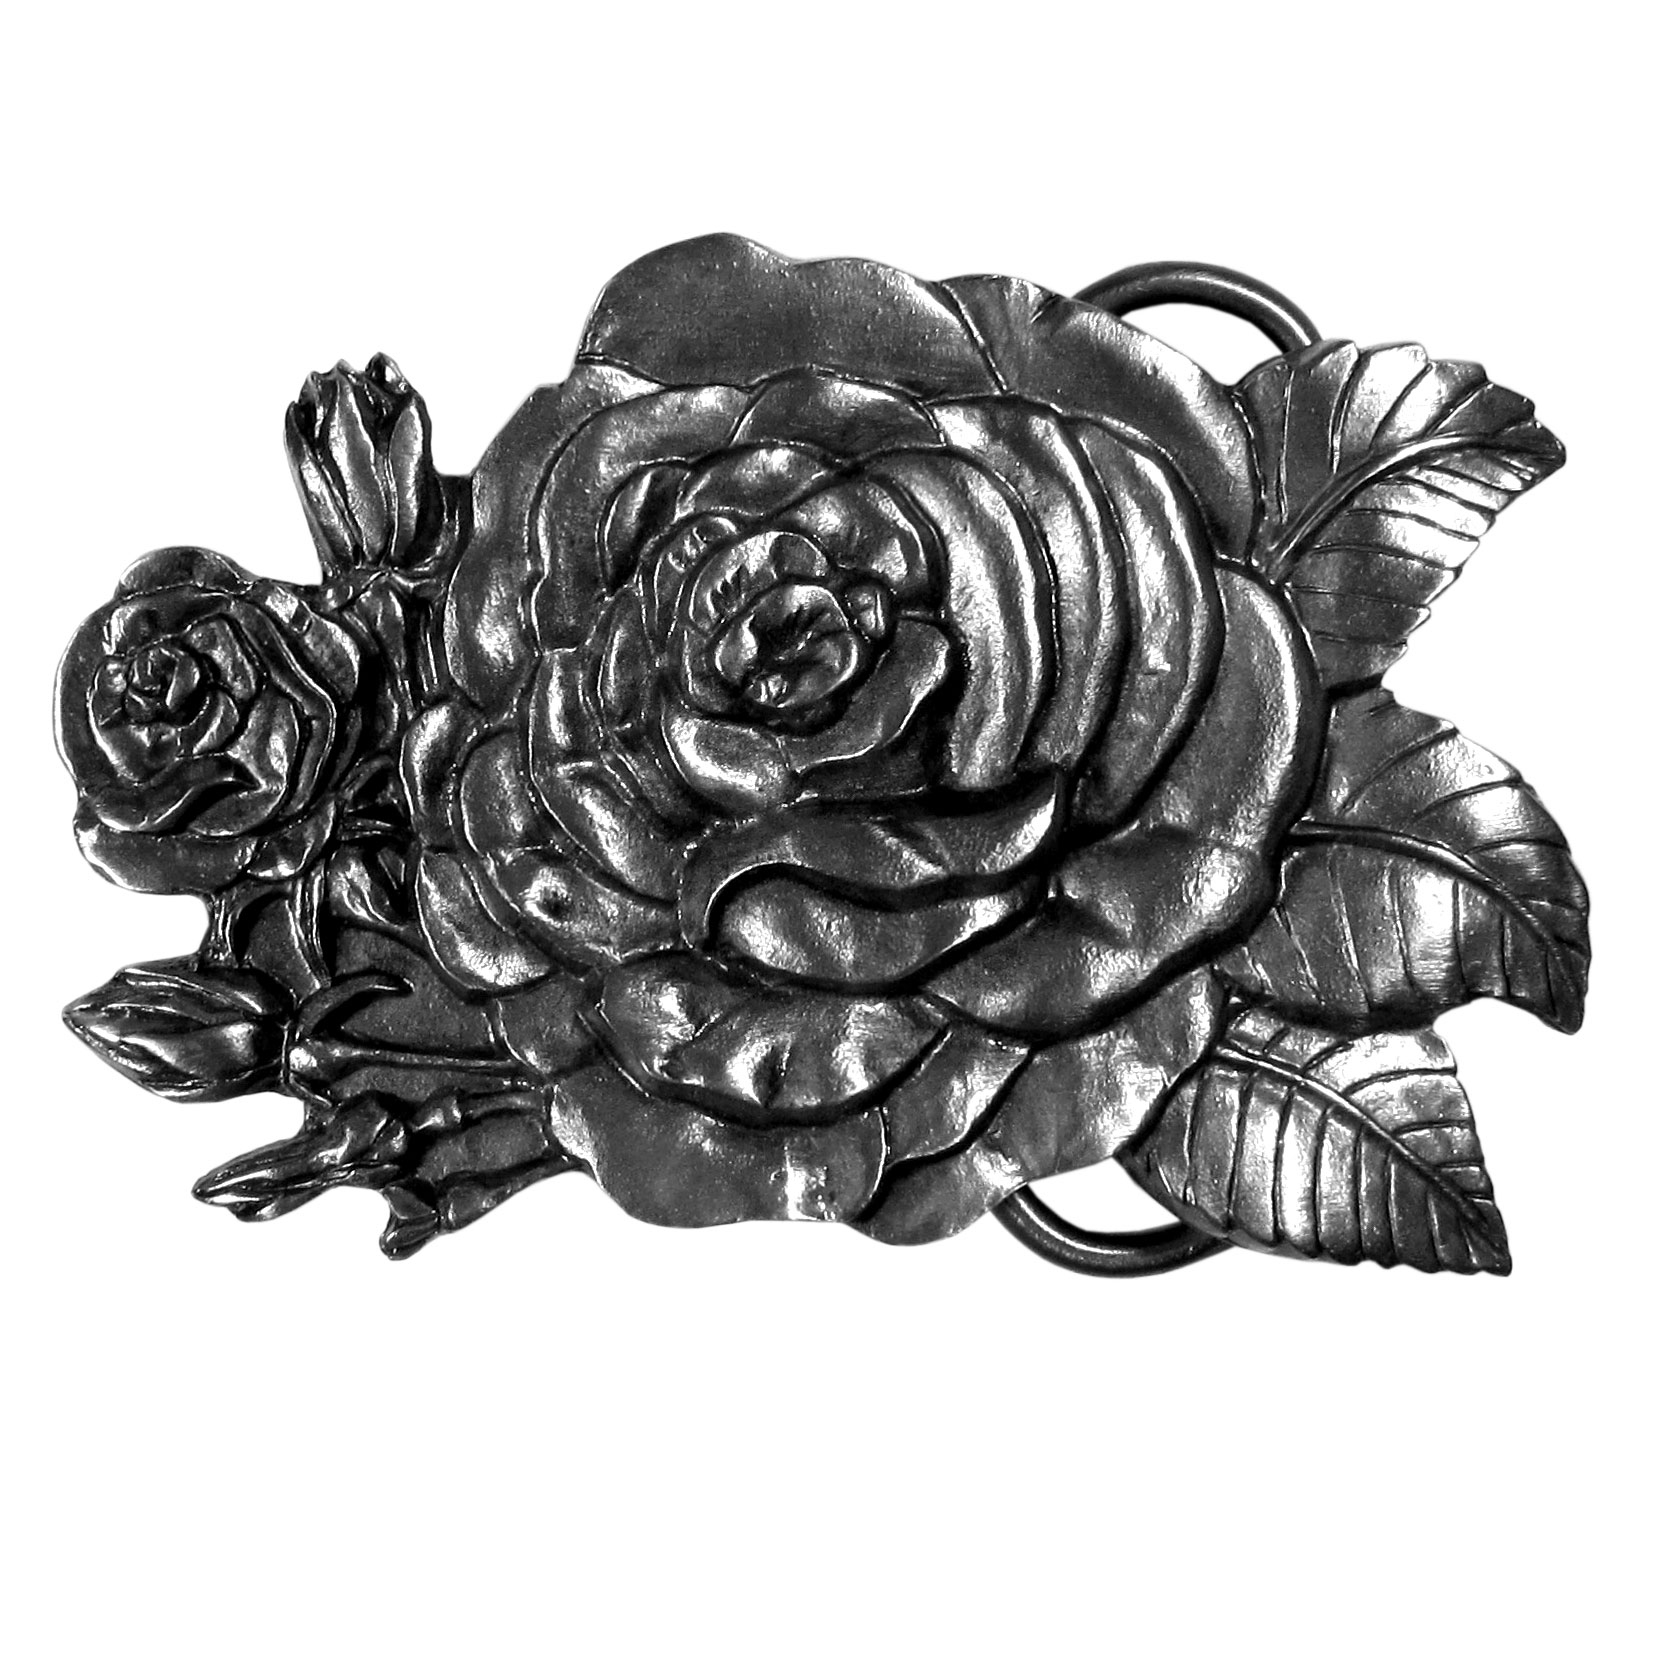 Rose Antiqued Belt Buckle - This beautiful buckle features a sculpted rose with rose buds and leaves surrounding it.  Finely sculpted and intricately designed belt buckle. Our unique designs often become collector's items.